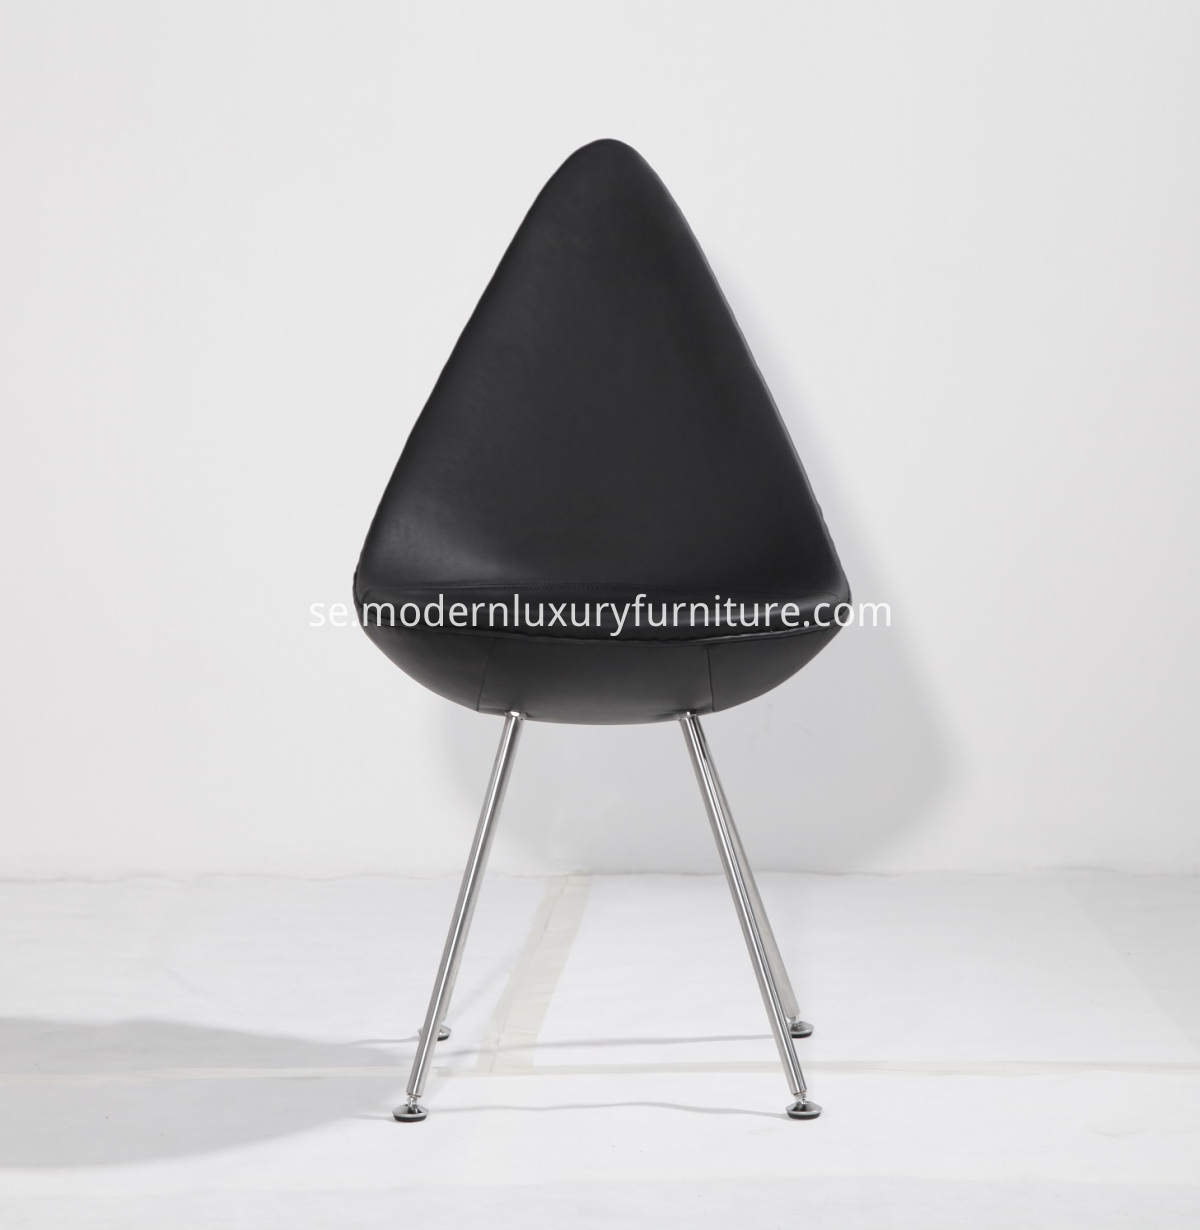 Arne Jacobsen drop chair replica